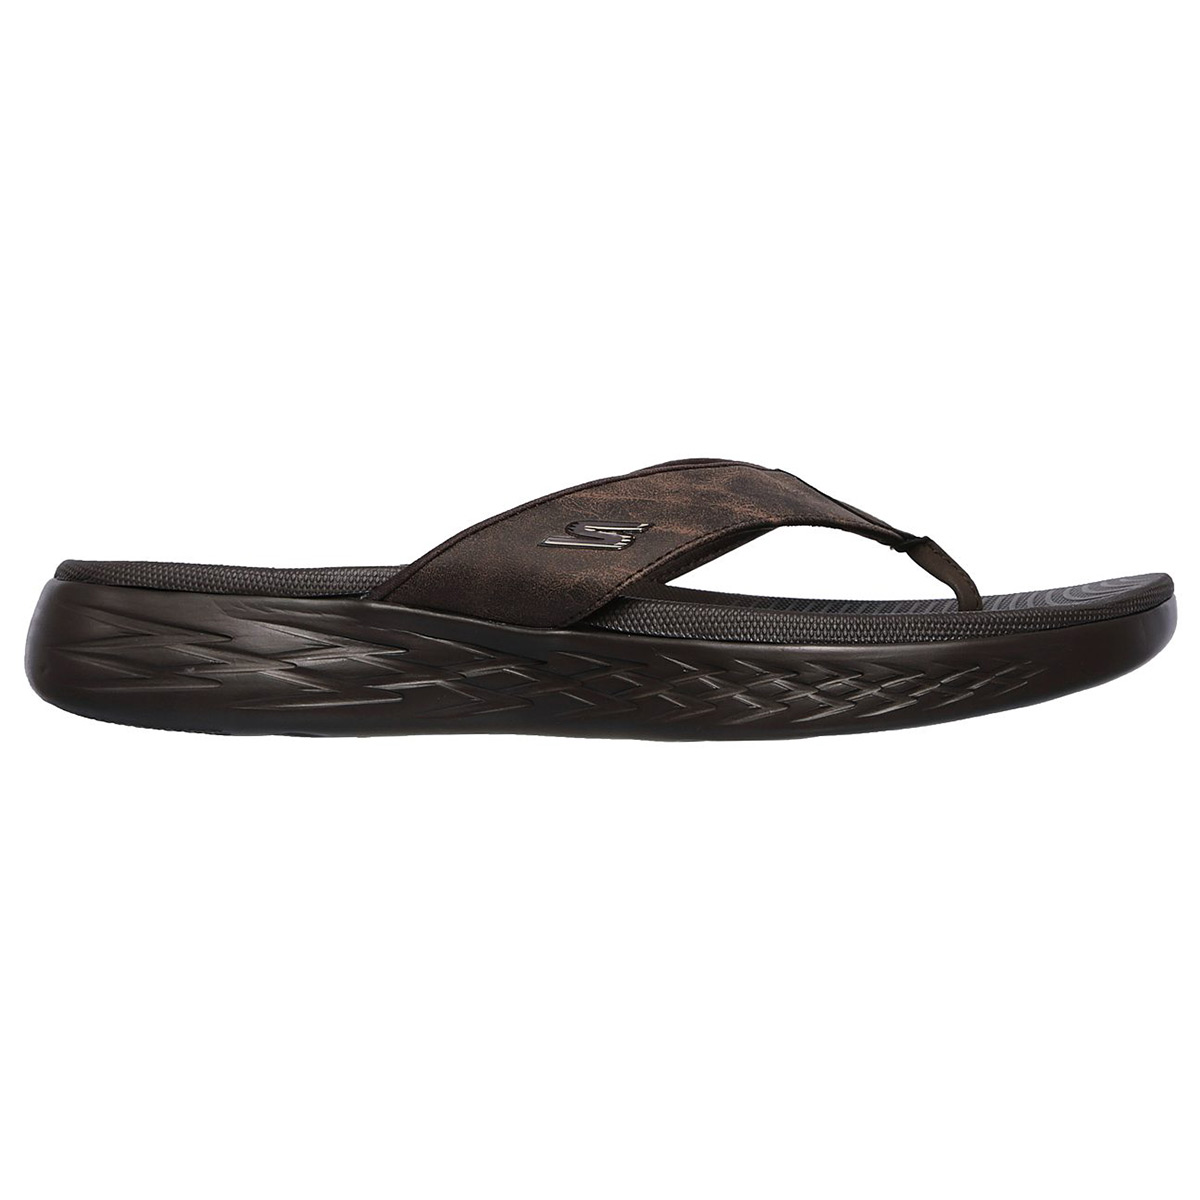 68f55db4e0d7 Skechers 55352 On-the-go 600 Seaport - Choc (brown) Mens Sandals 44 ...